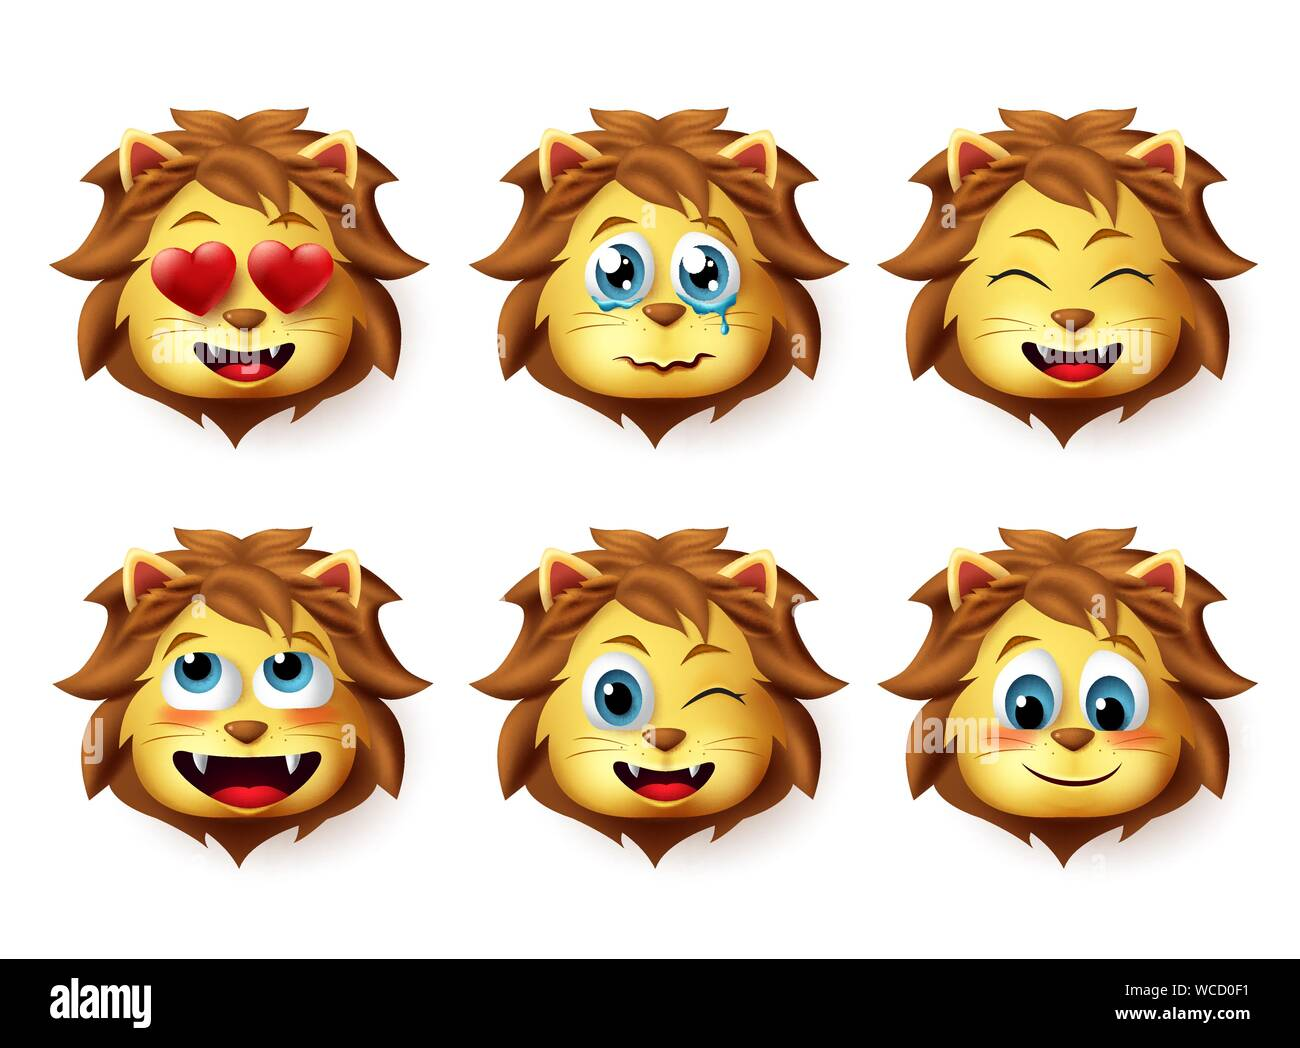 Animal Emoji Vector High Resolution Stock Photography And Images Alamy Unique lion face emoji stickers designed and sold by artists. https www alamy com lion animal emoji vector set lions emoticons with funny and inlove facial expressions for design elements isolated in white background image265817189 html